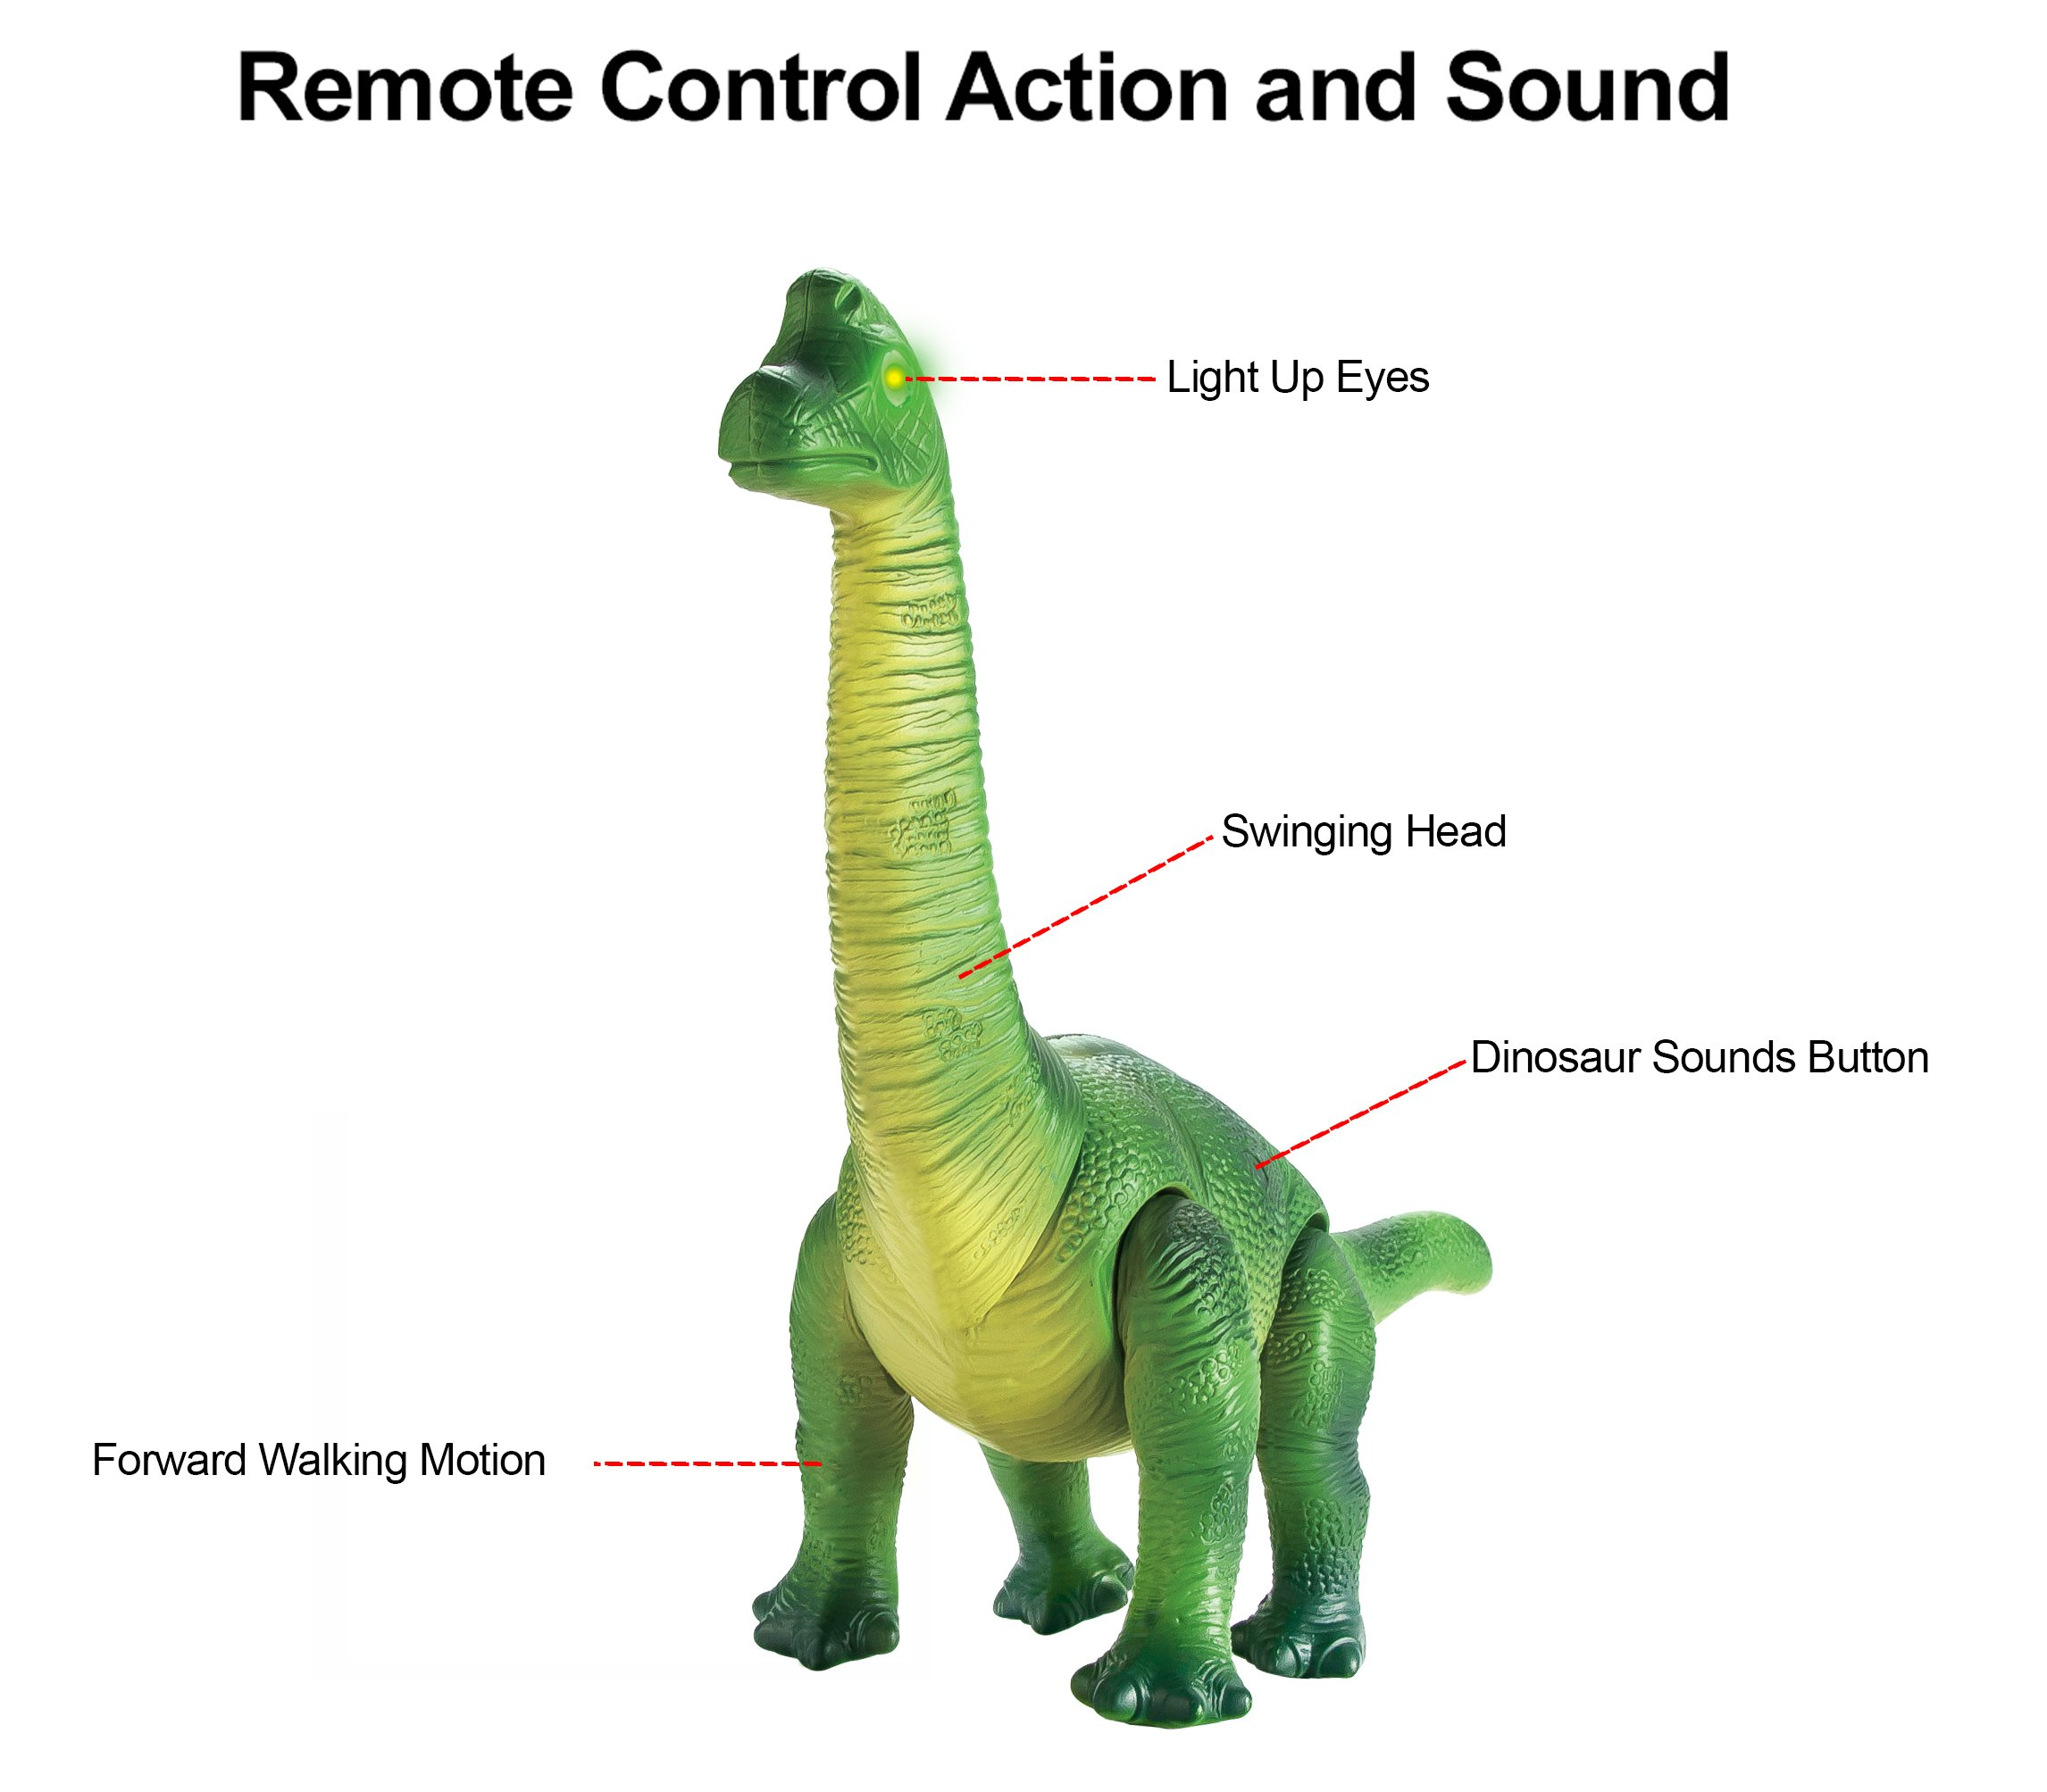 Liberty Imports Dino Planet Remote Control RC Walking Dinosaur Toy with Shaking Head, Light Up Eyes and Sounds (Brachiosaurus) by Liberty Imports (Image #2)